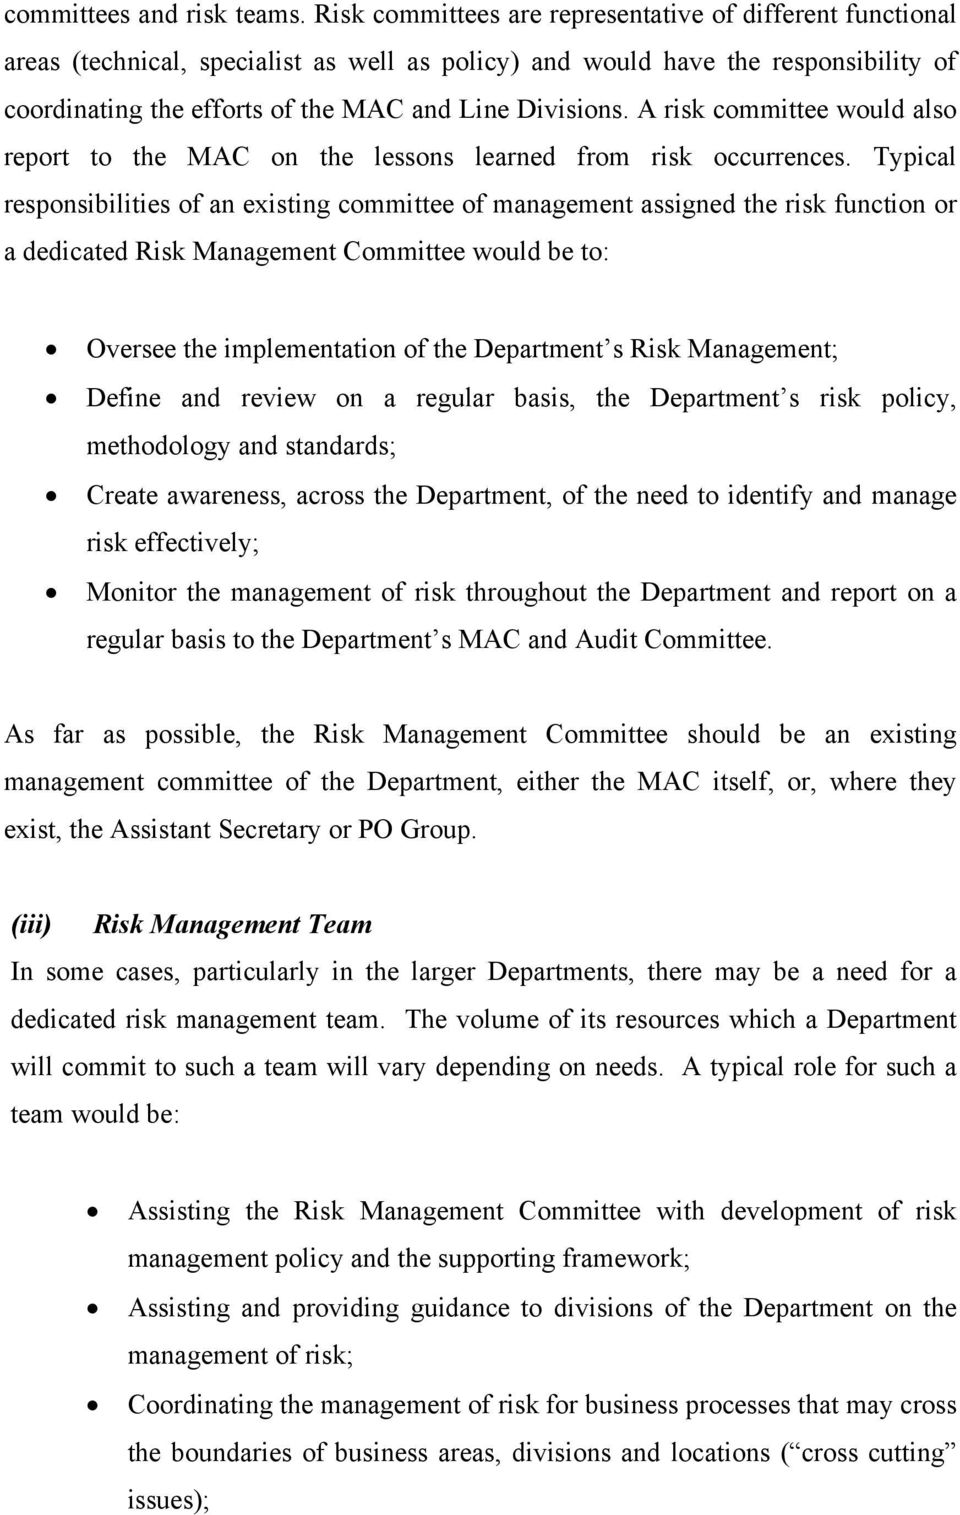 A risk committee would also report to the MAC on the lessons learned from risk occurrences.